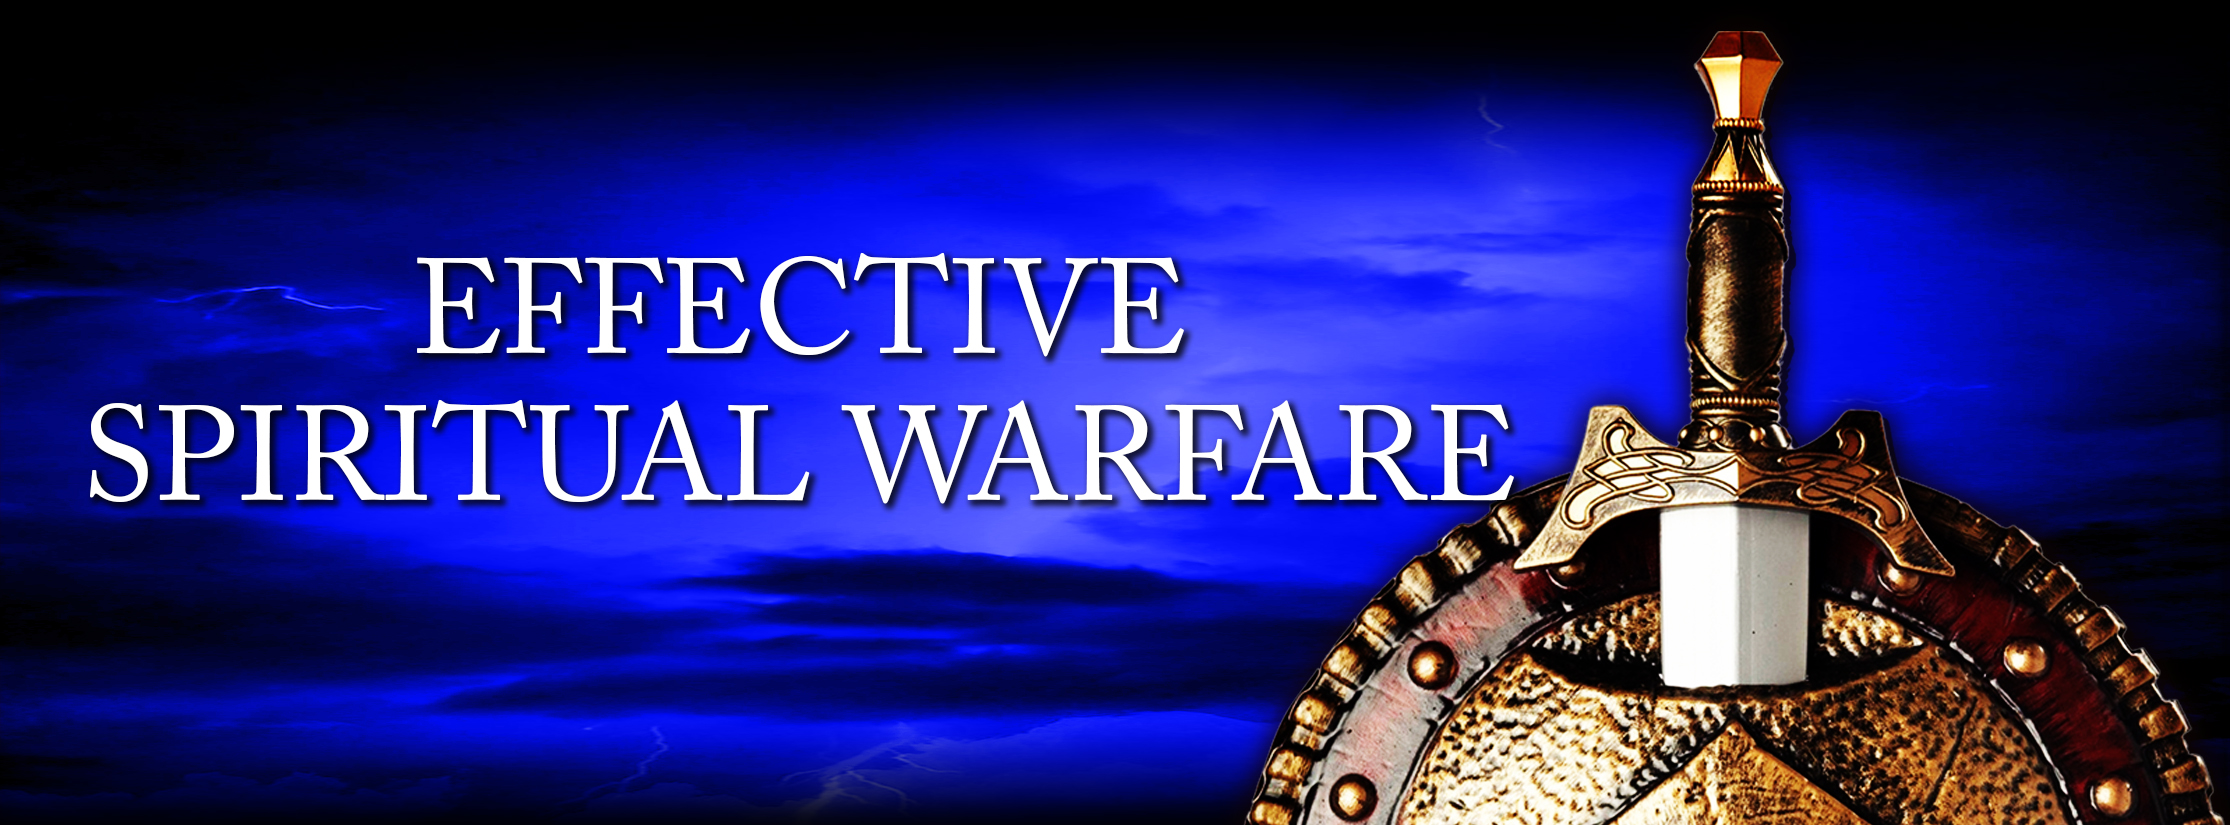 Effective Spiritual Warfare